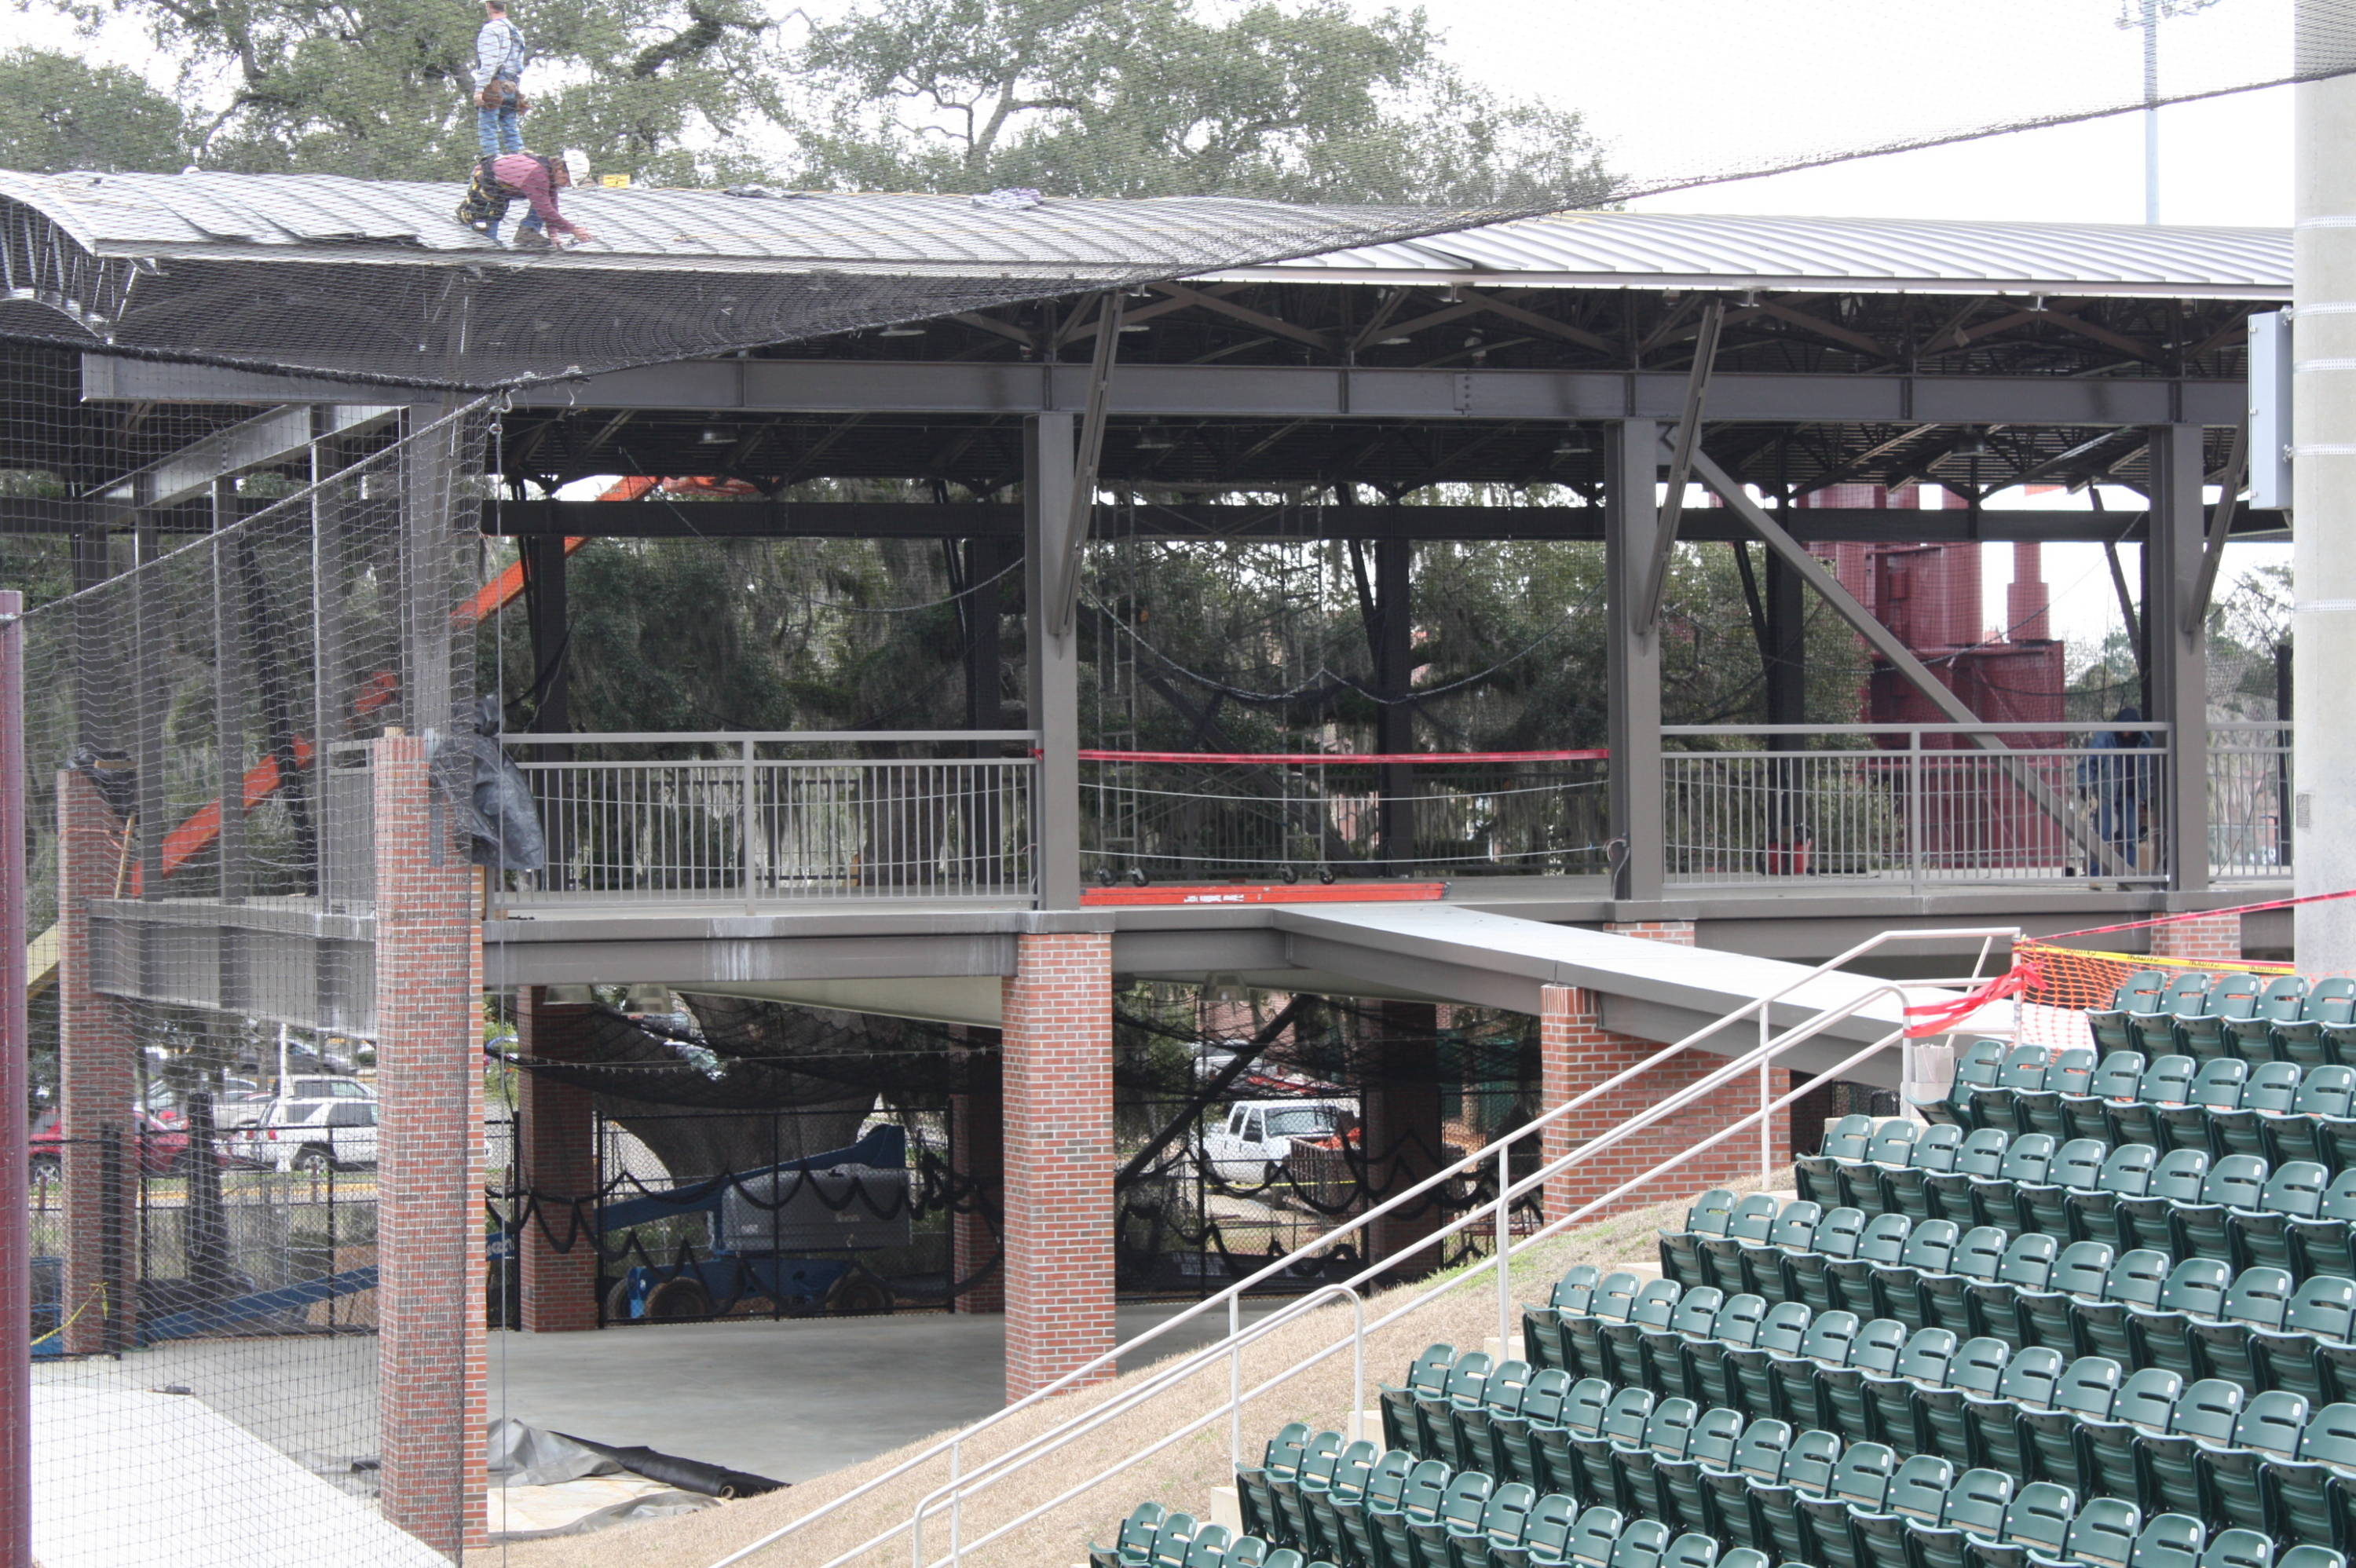 Another view of the indoor batting cage facility during its construction